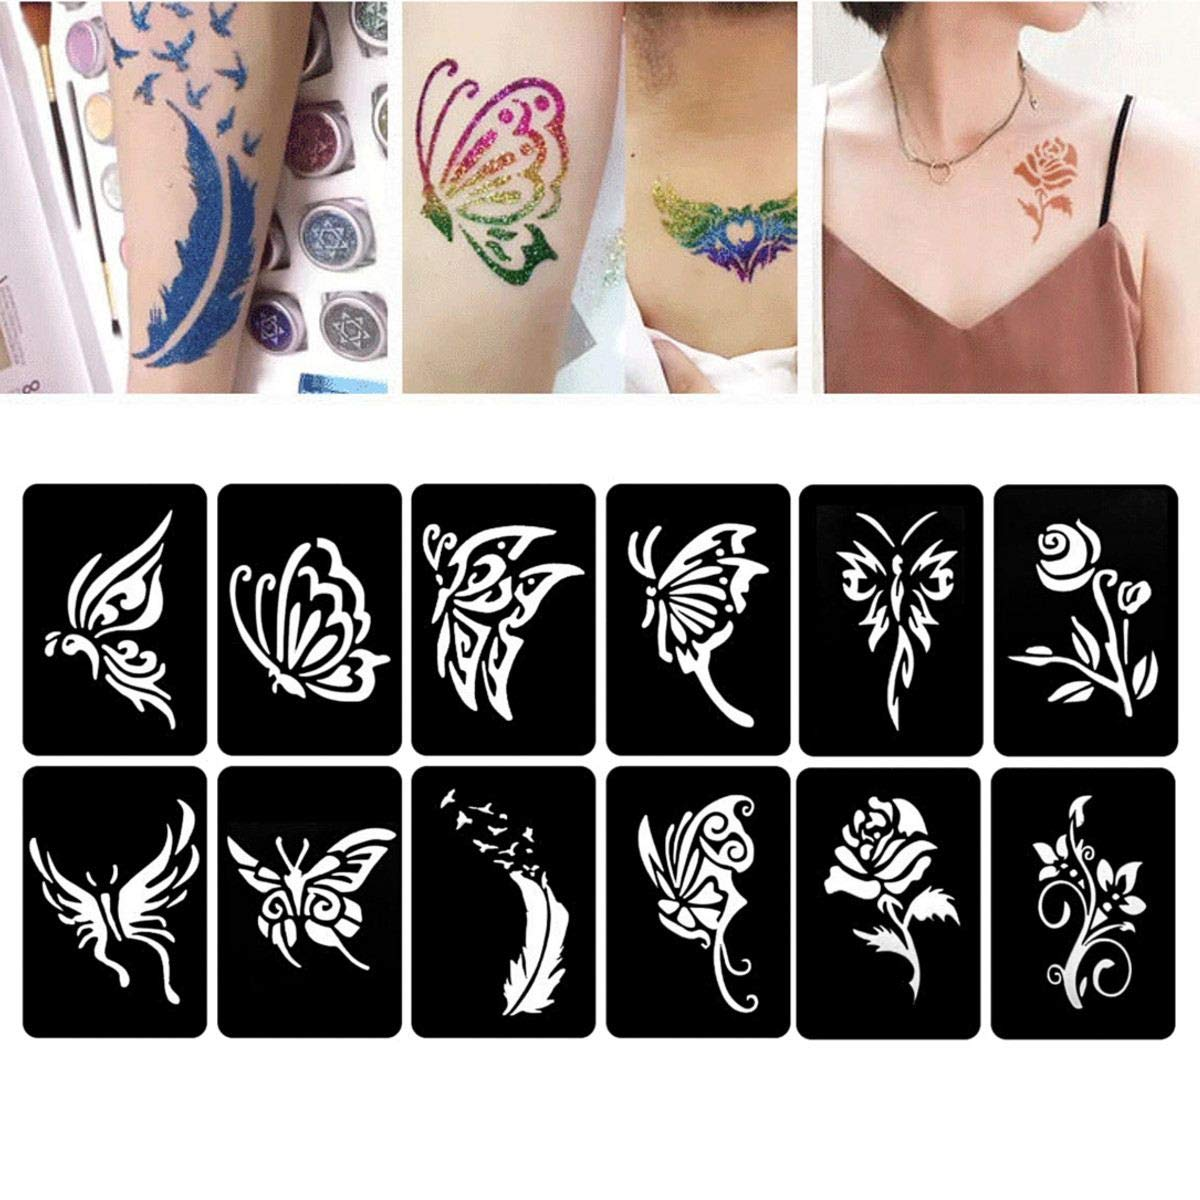 Henna Stencils 118 Patterns Henna Tattoo Stencils Temporary Glitter Airbrush Painting Insect Flower Letter Sexy Women Body Art Tattoo Templates